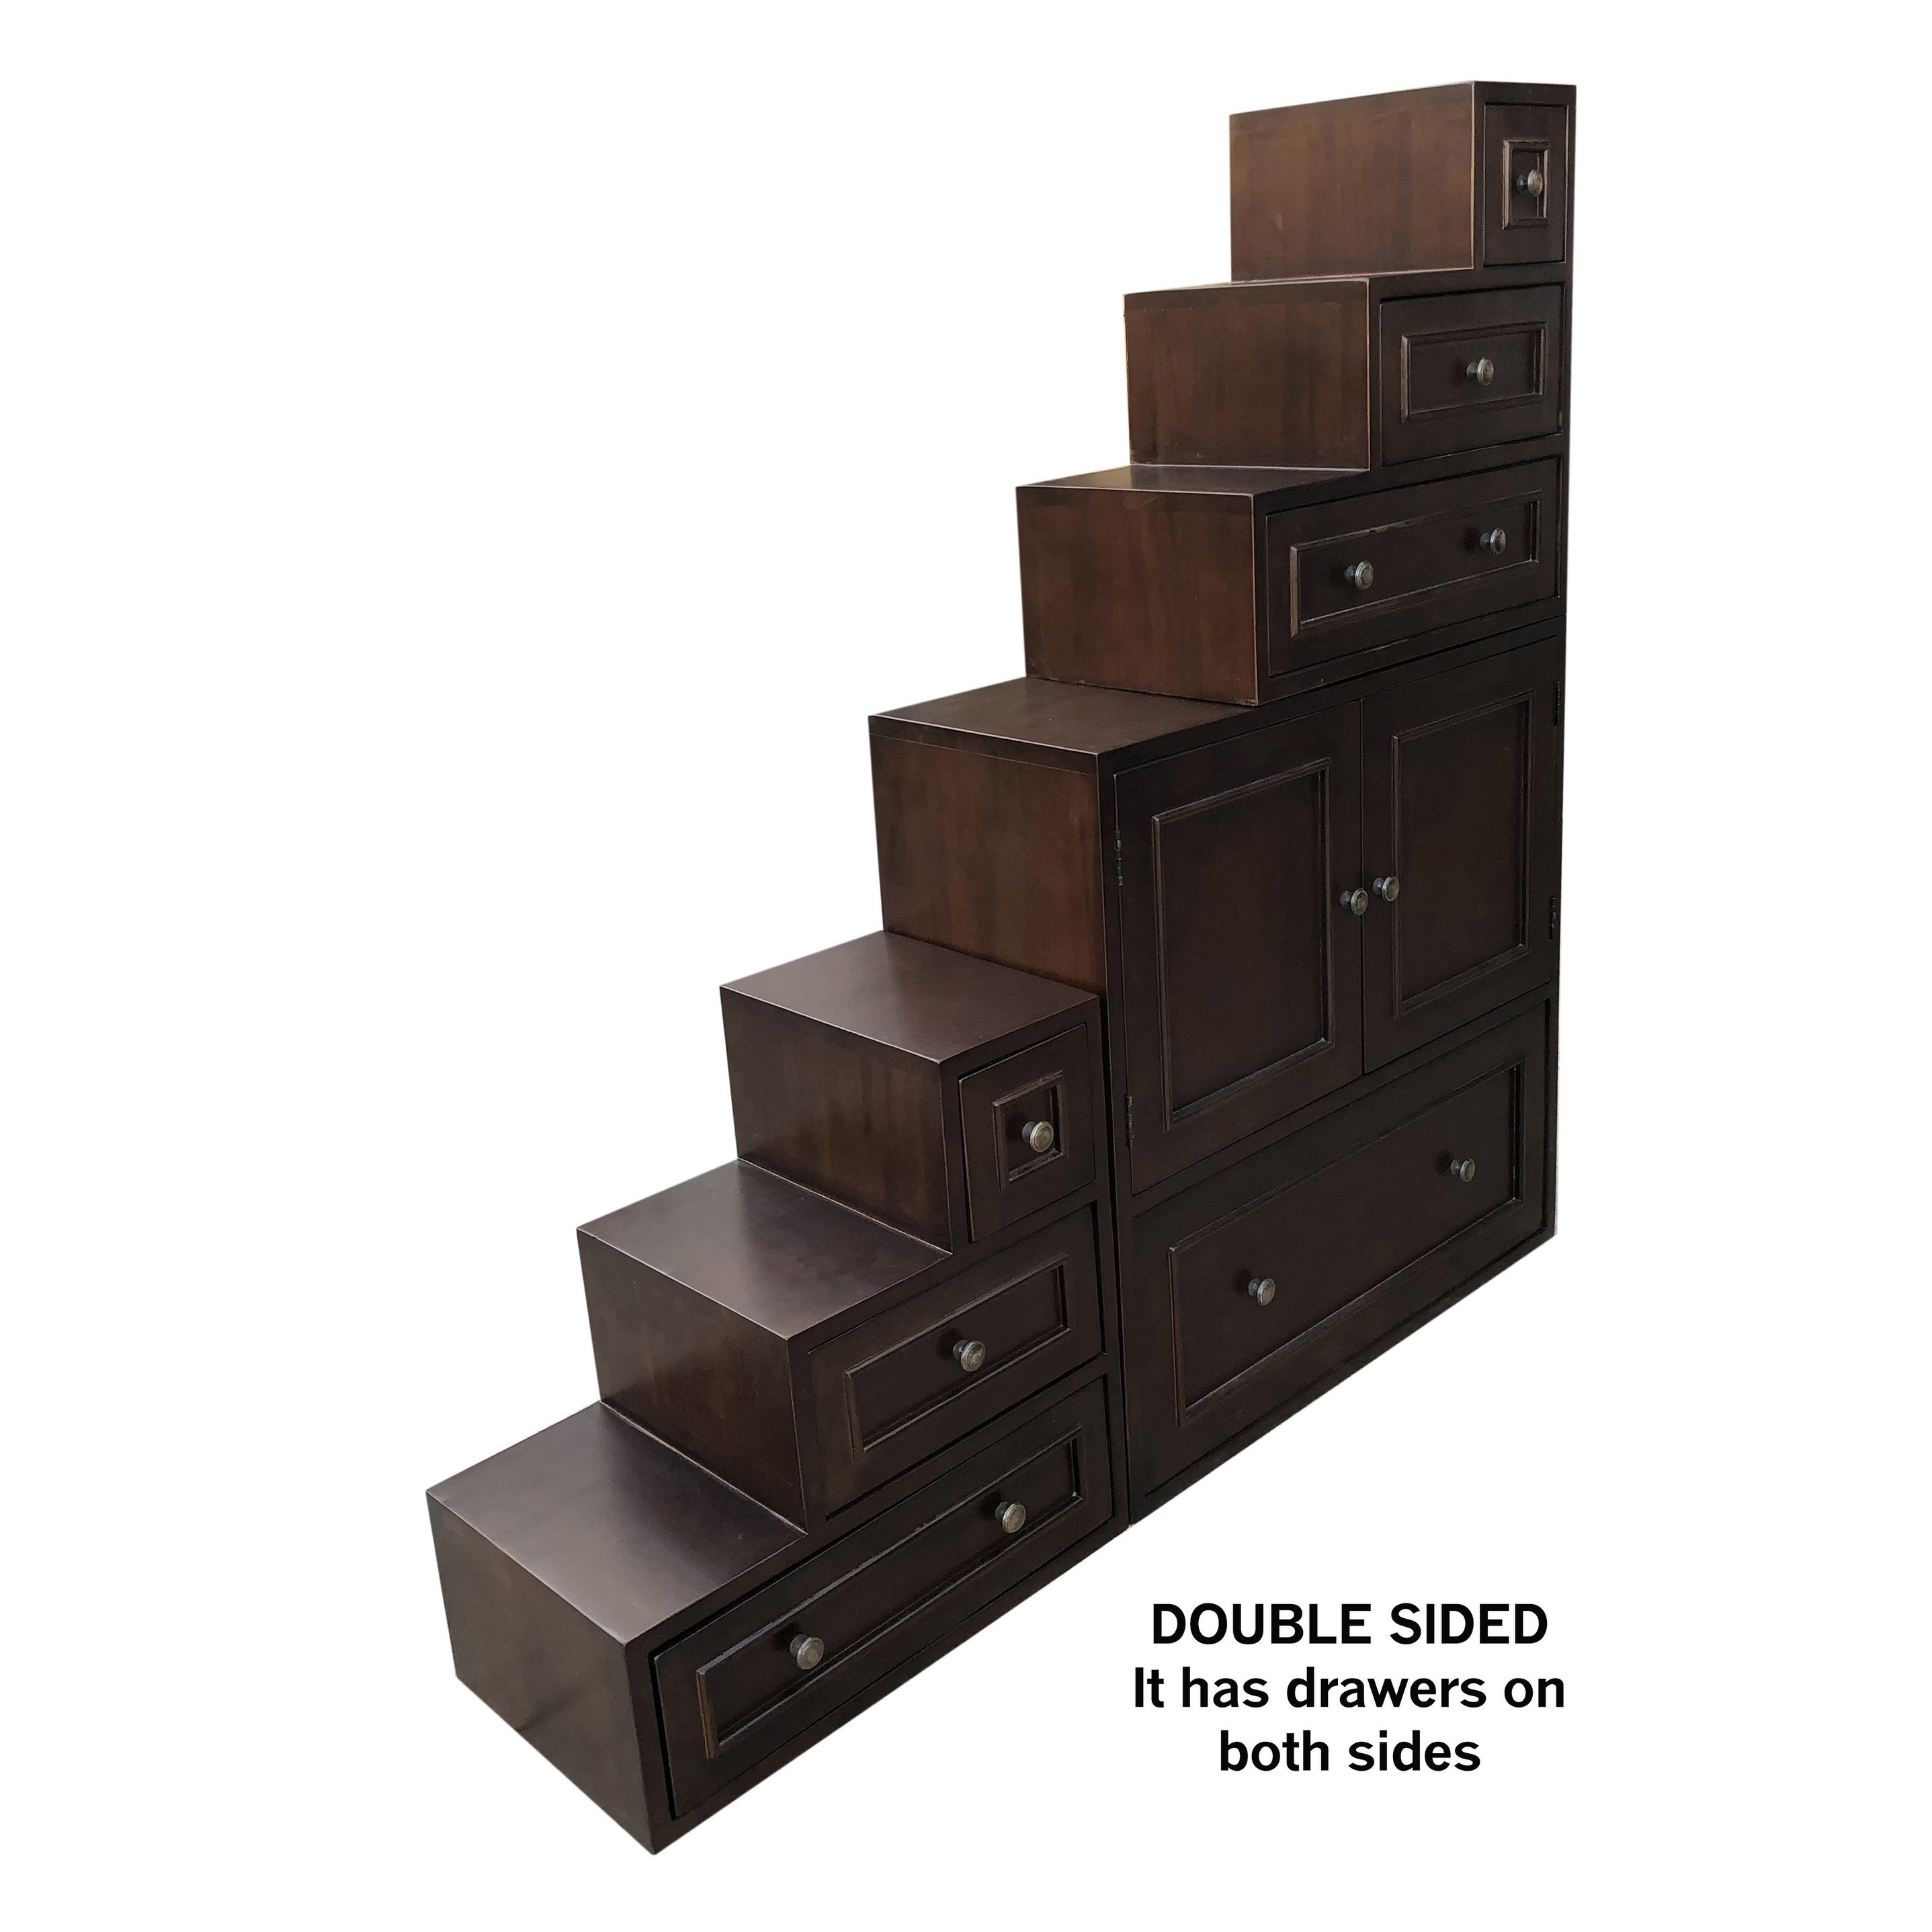 Asian Step Cabinet Double Sided